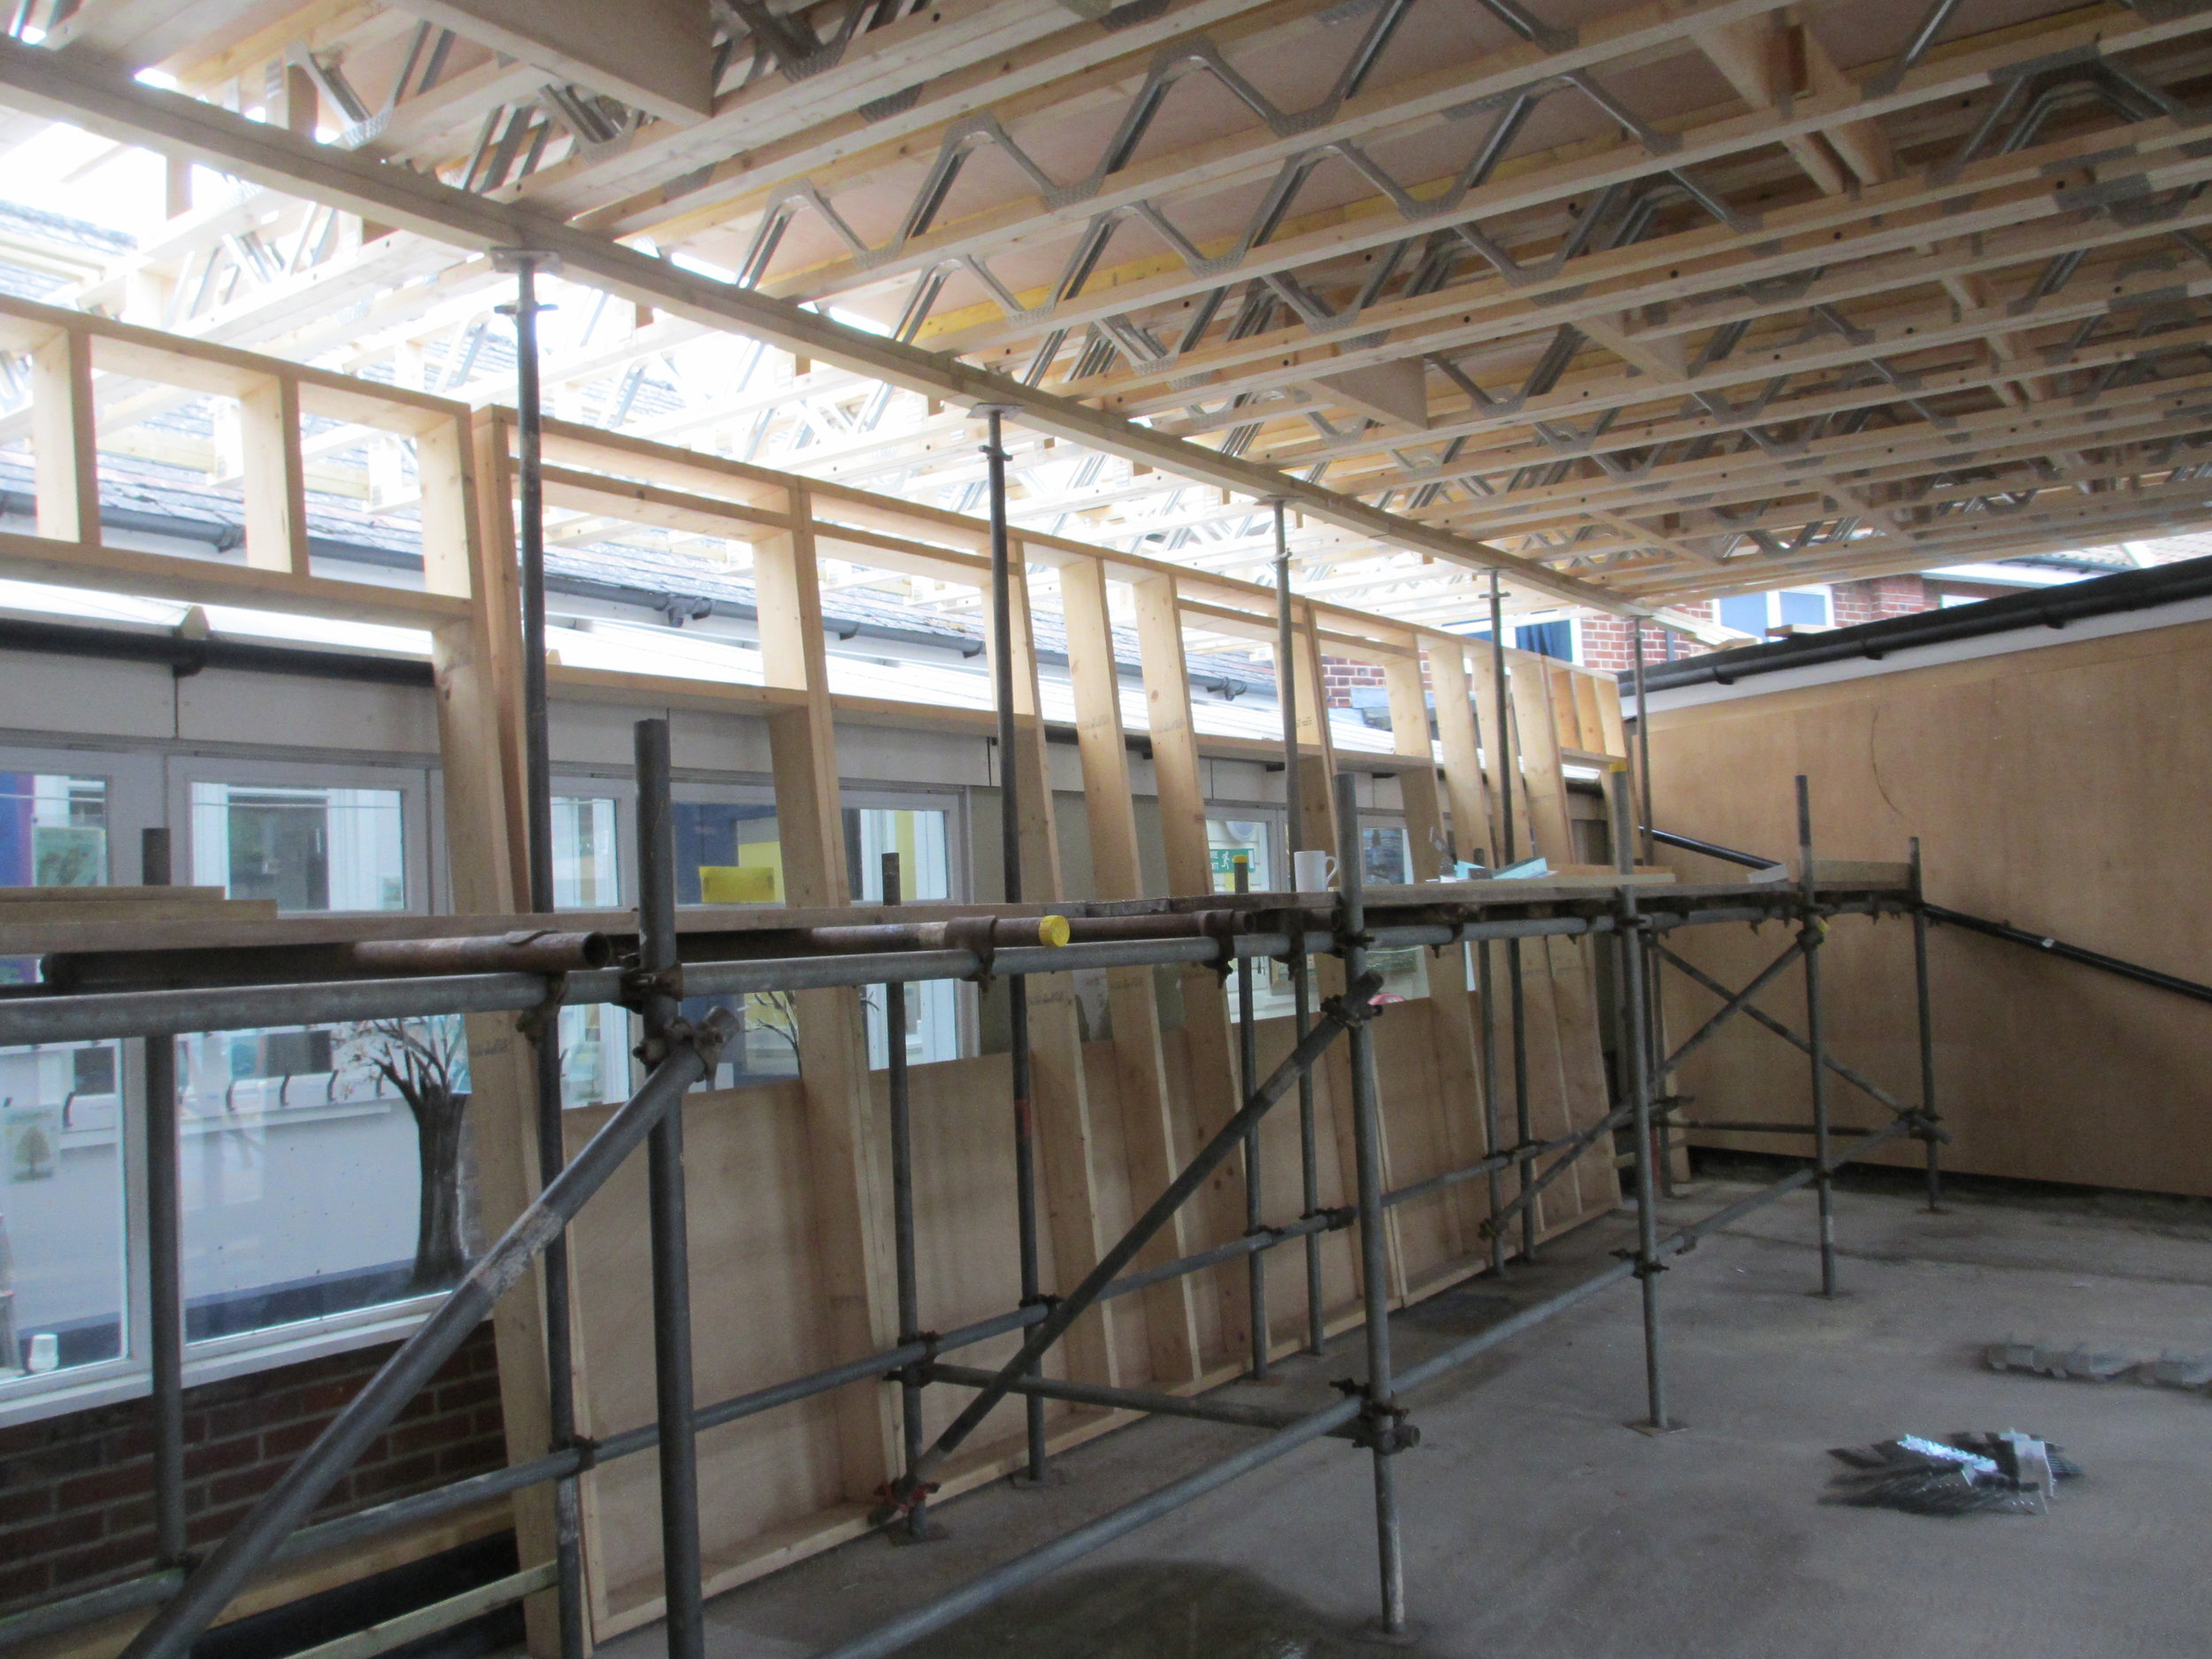 Internal view during construction.